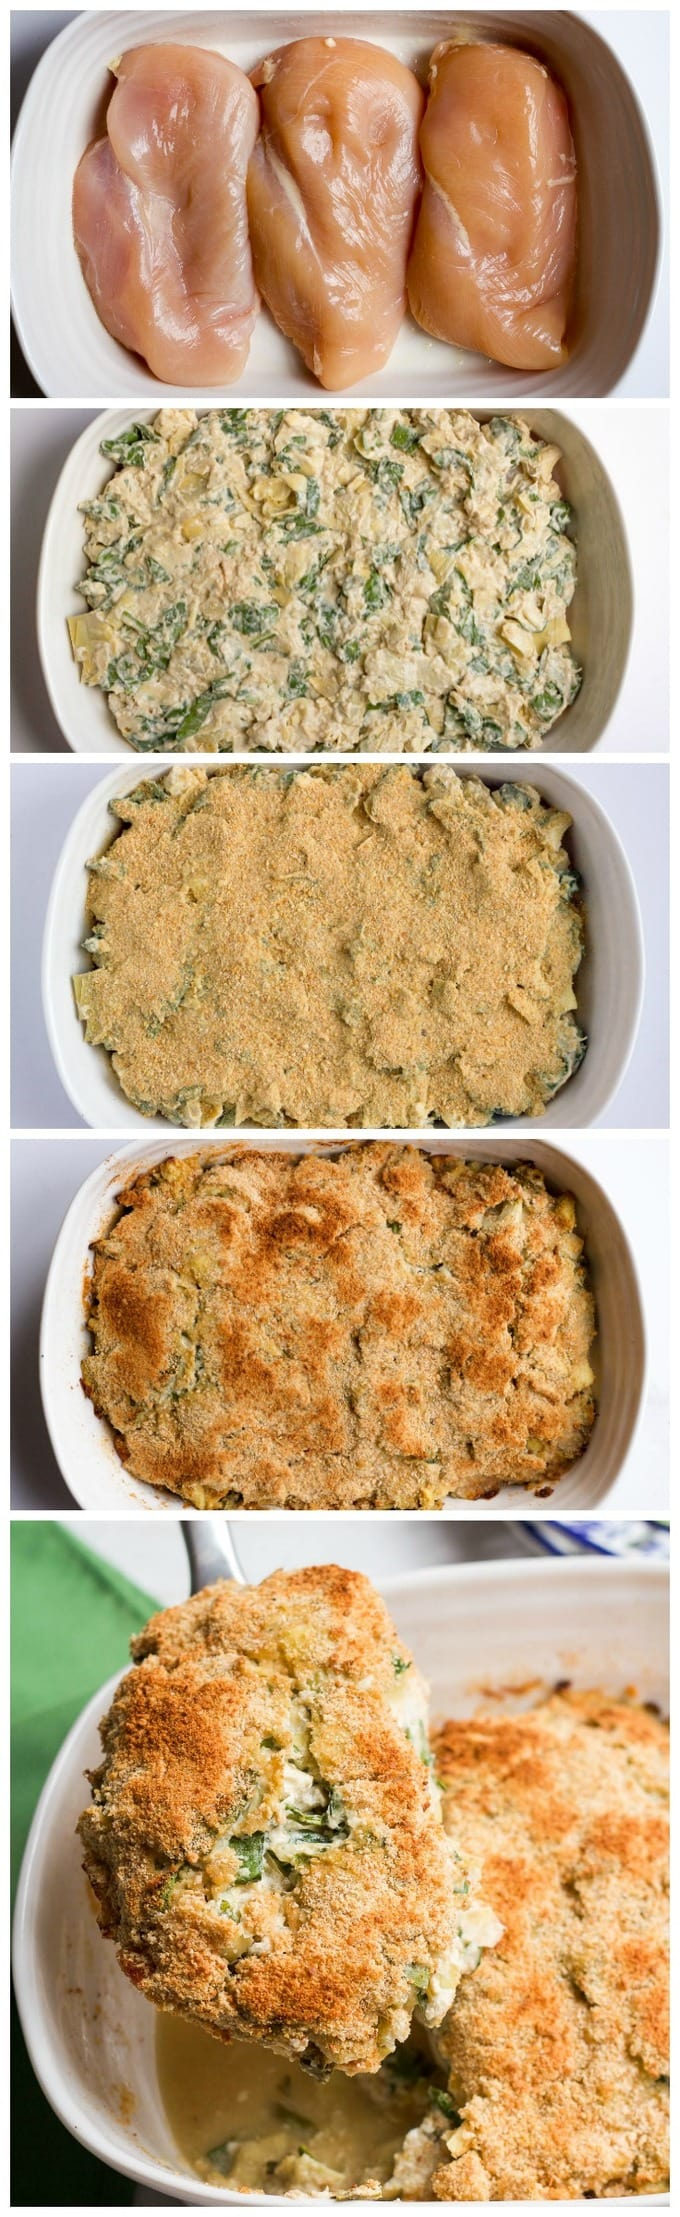 Super creamy (but lightened up) spinach artichoke chicken casserole - just 10 minutes to prep! Makes a great weeknight dinner or meal for company! | FamilyFoodontheTable.com